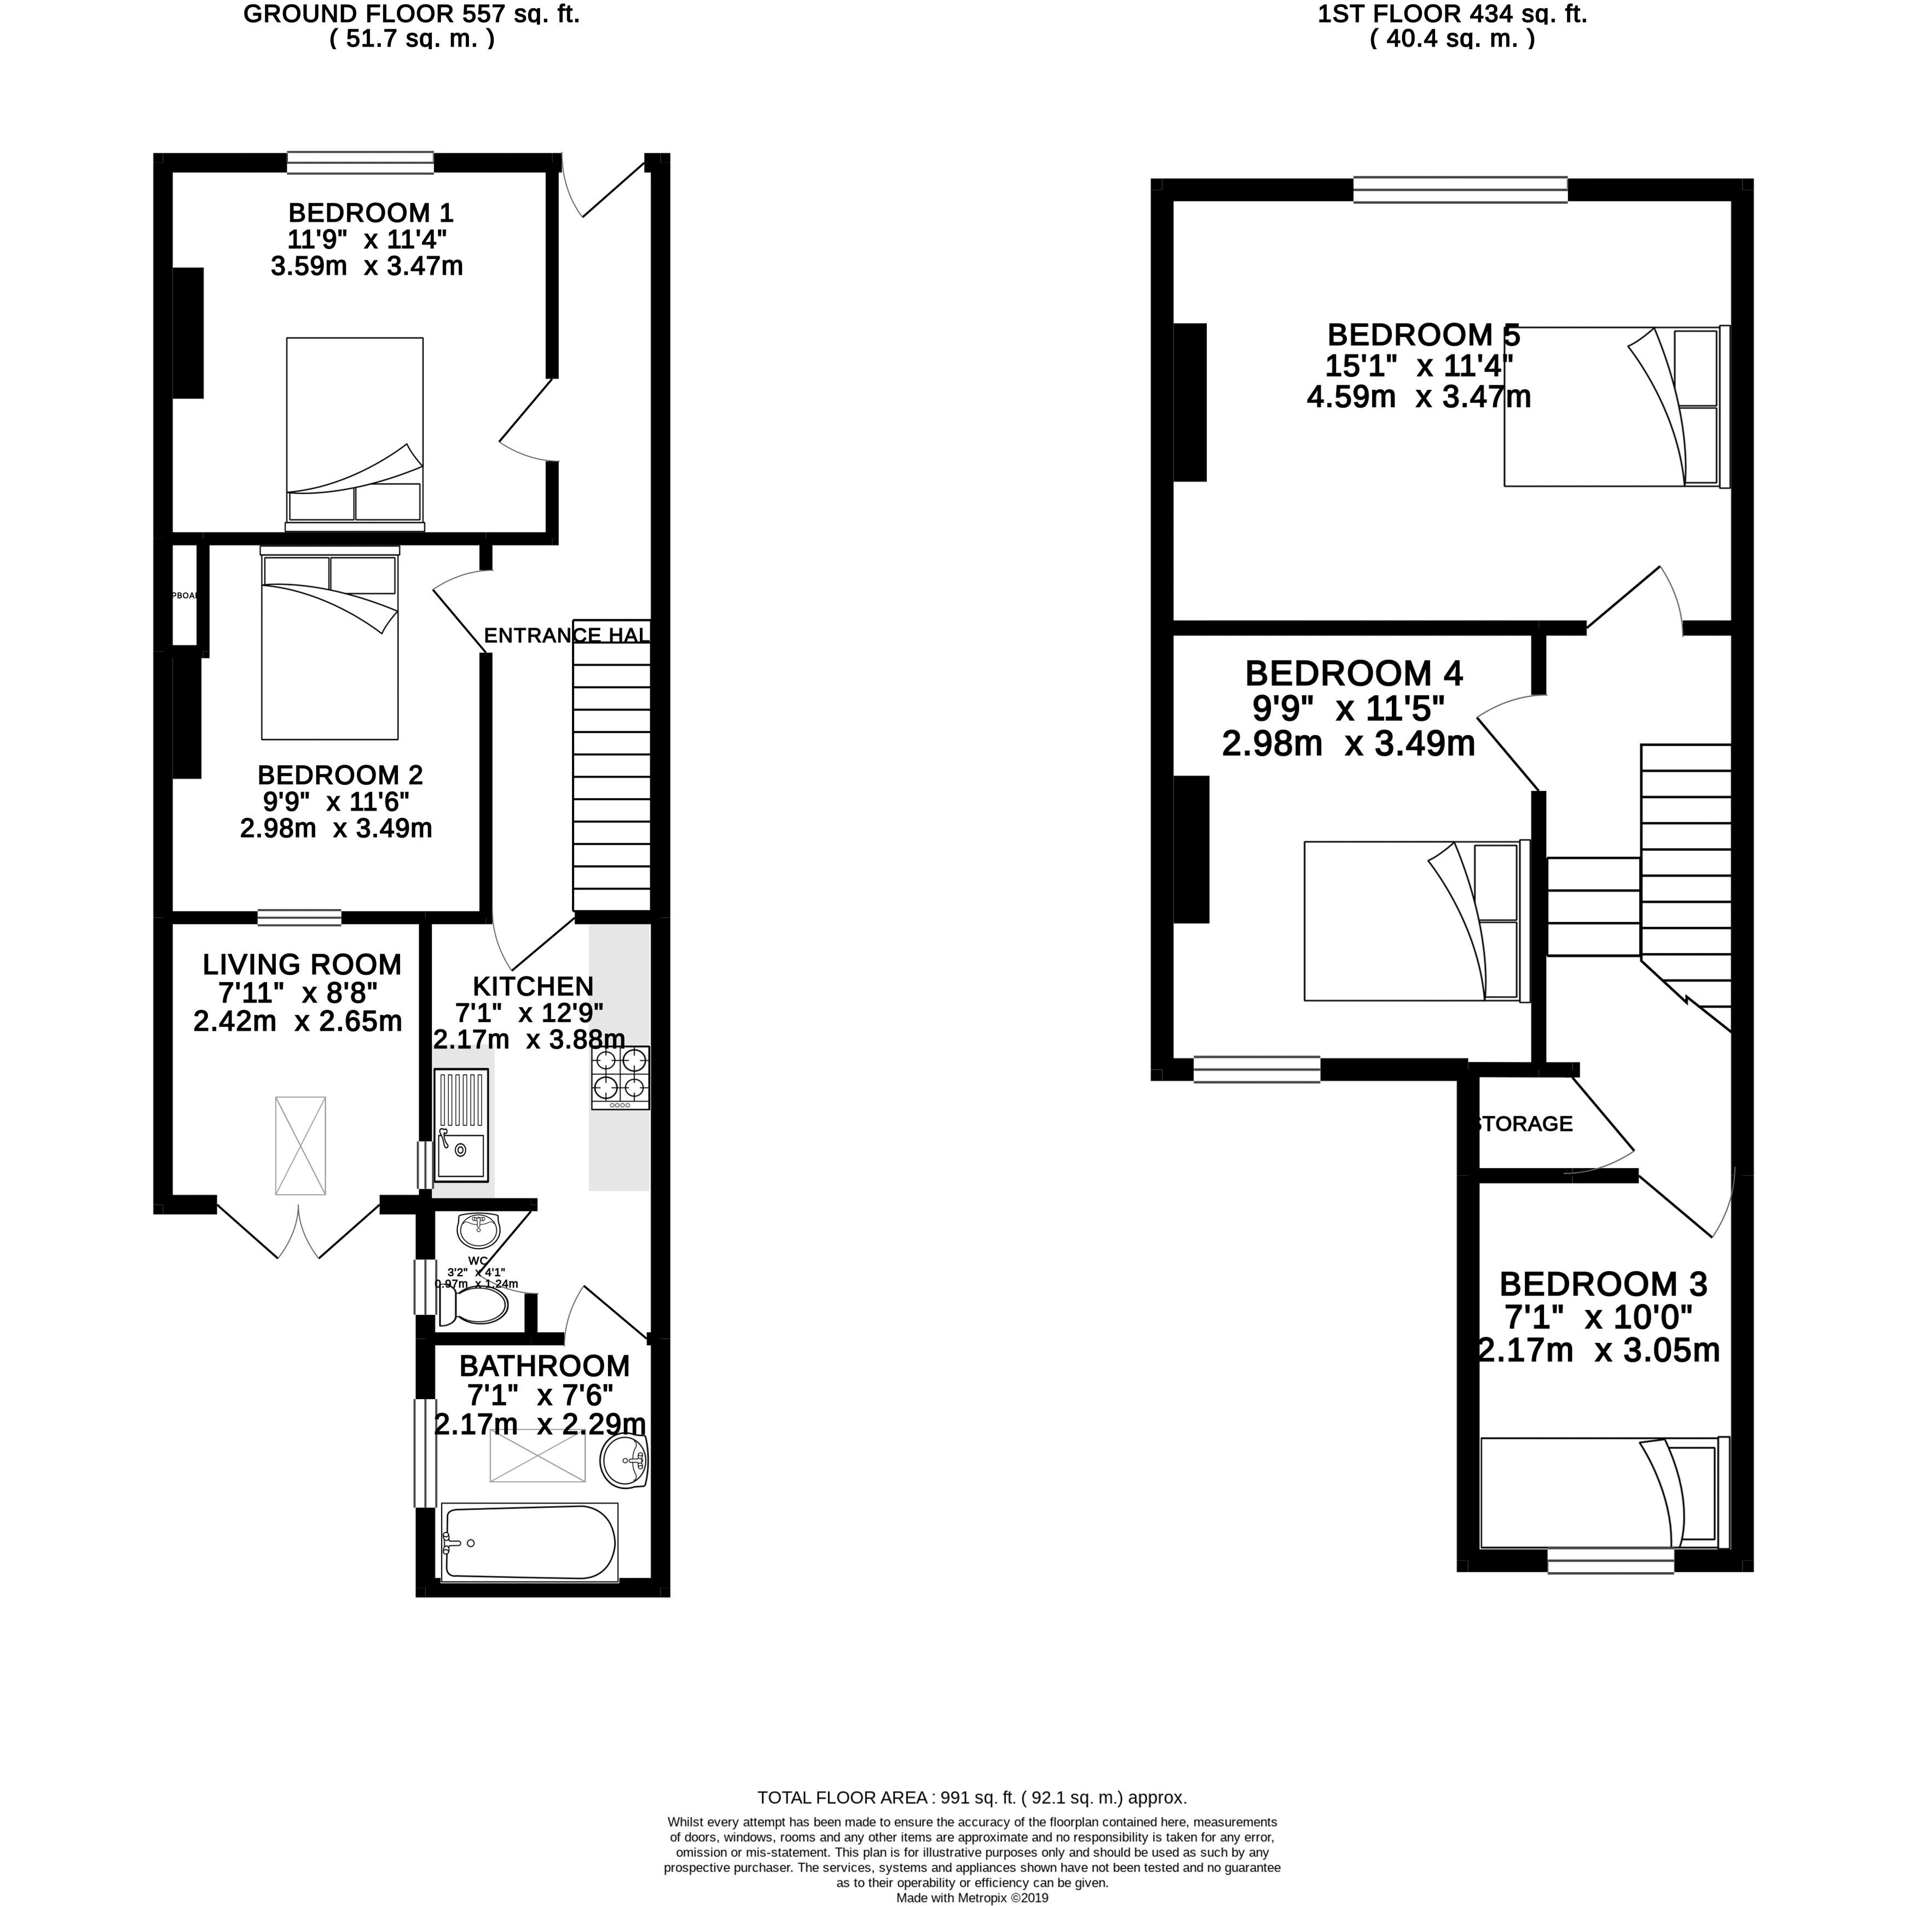 Floor plans for Howard Road, Brighton property for sale in Hanover, Brighton by Coapt